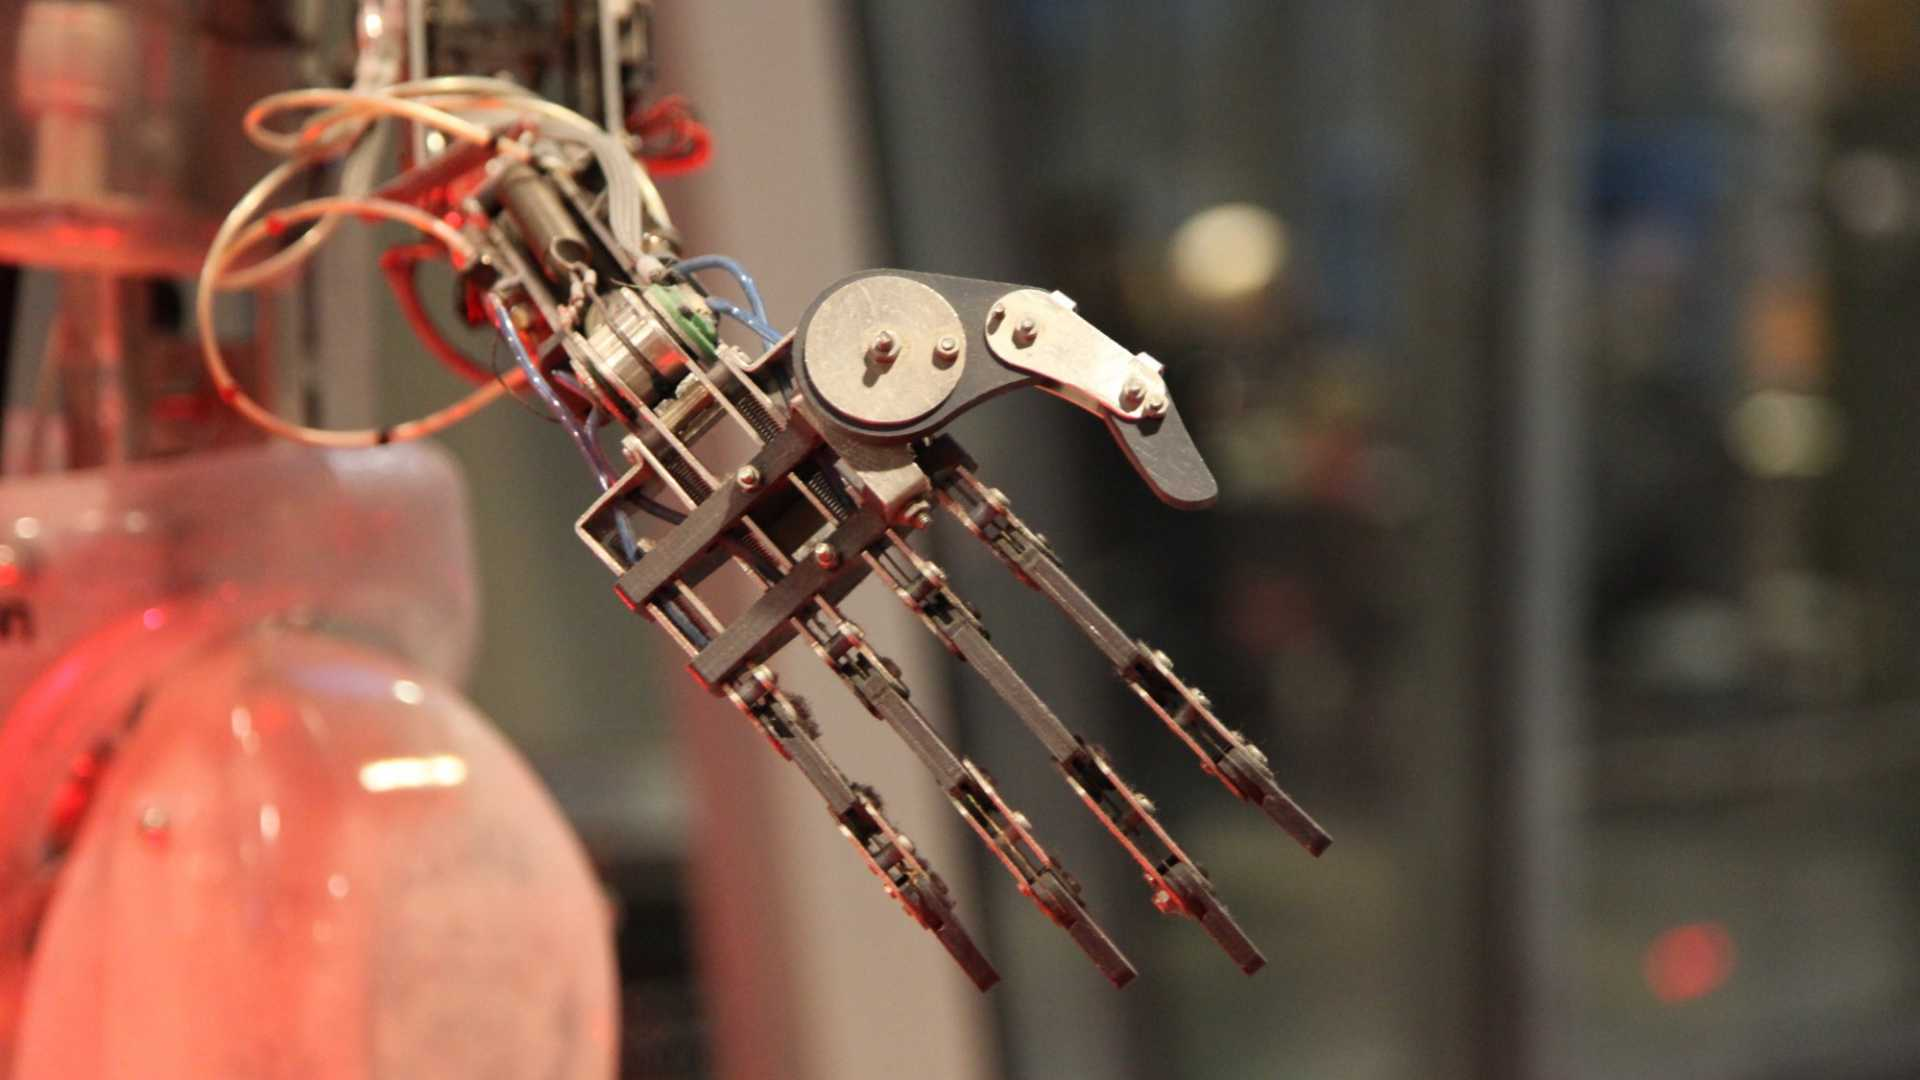 Before Robots Can Outsmart Humans, the Tech Industry Has a Lot of Work to Do